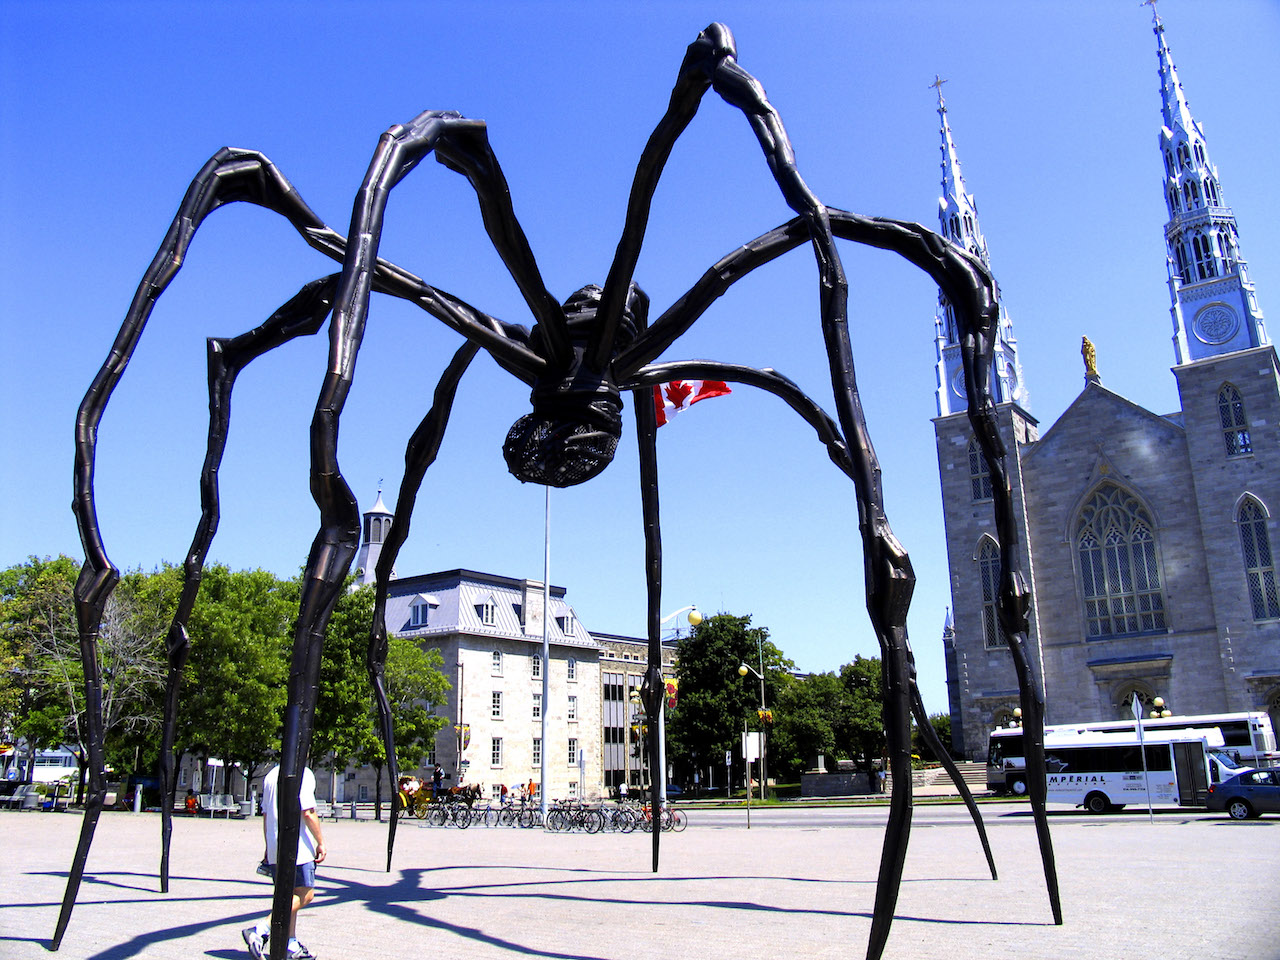 """Louise Bourgeois' """"Maman"""" at the National Gallery of Canada (image via Wikipedia)"""